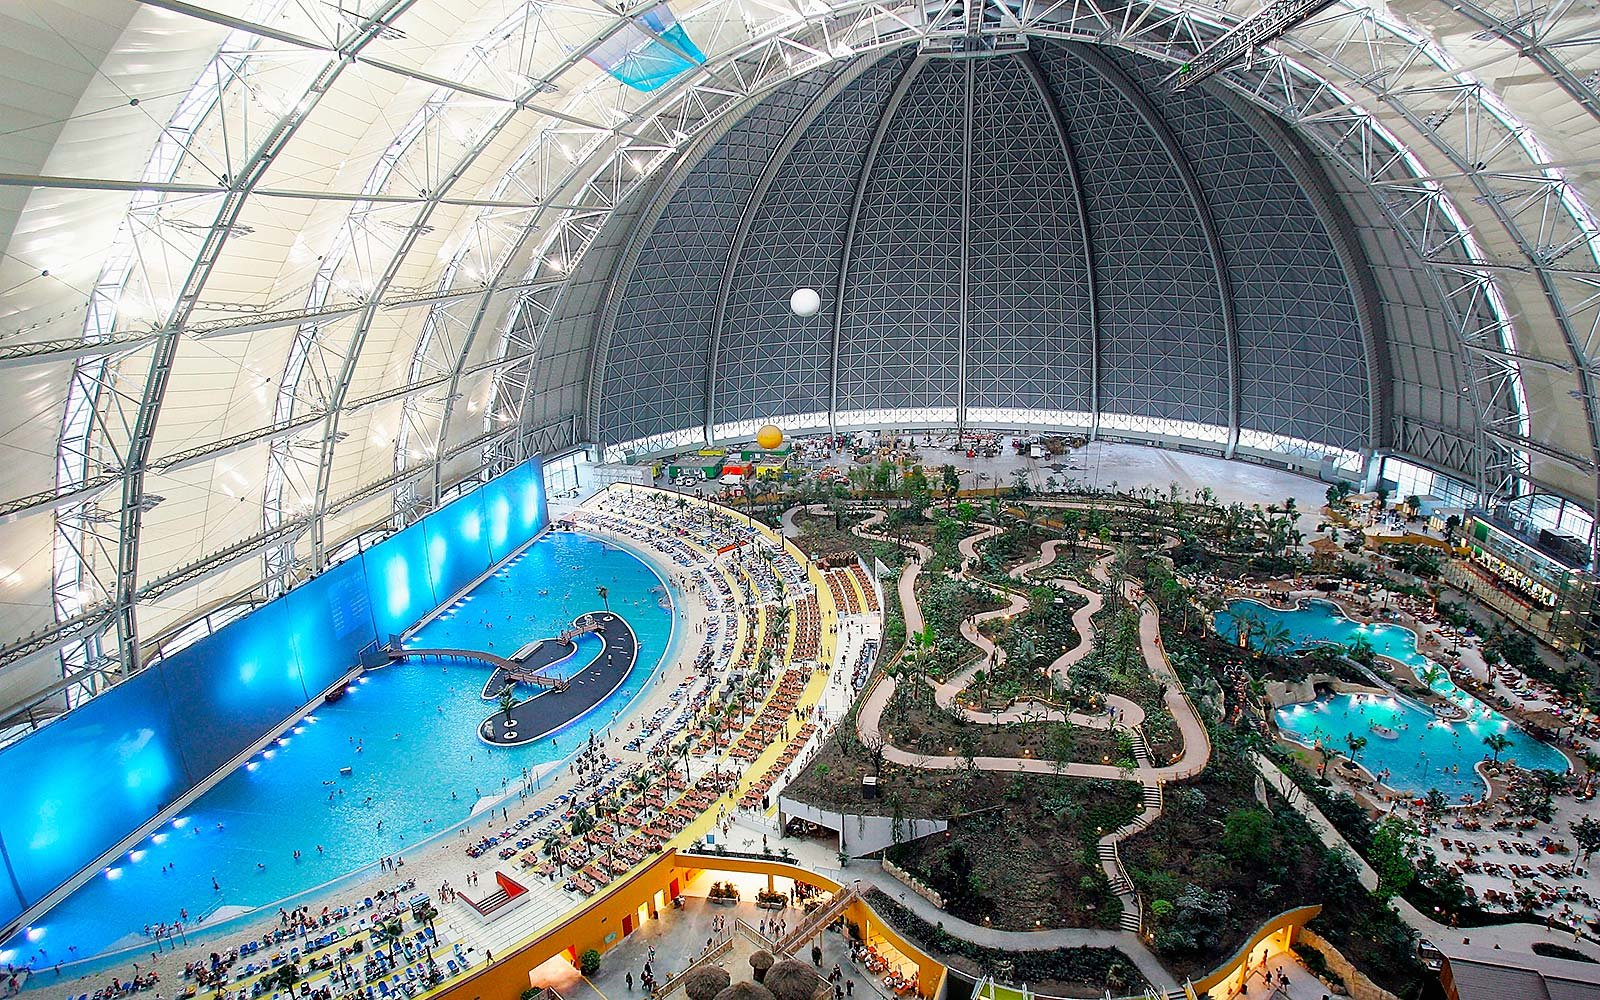 Inside the Biggest Waterpark in the World